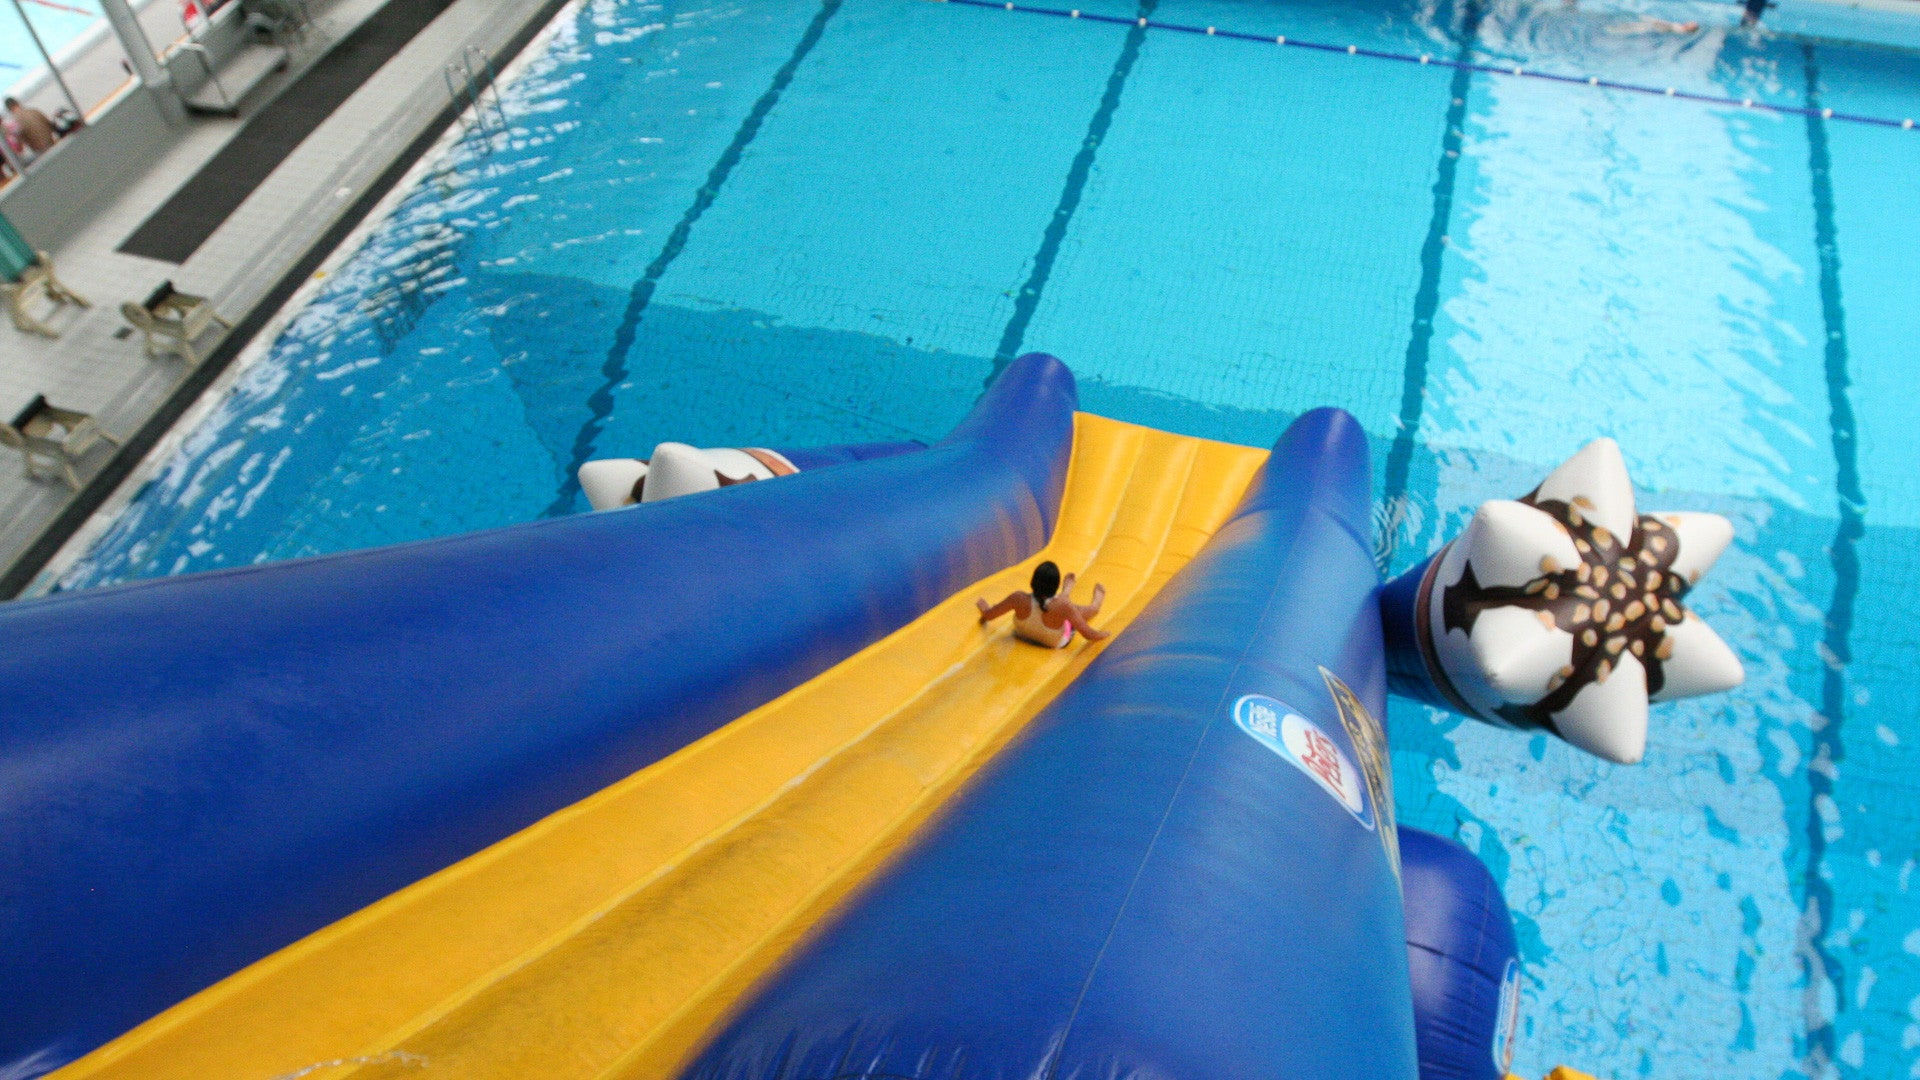 Custom Branded Slides - Pool Slides - Aflex Technology